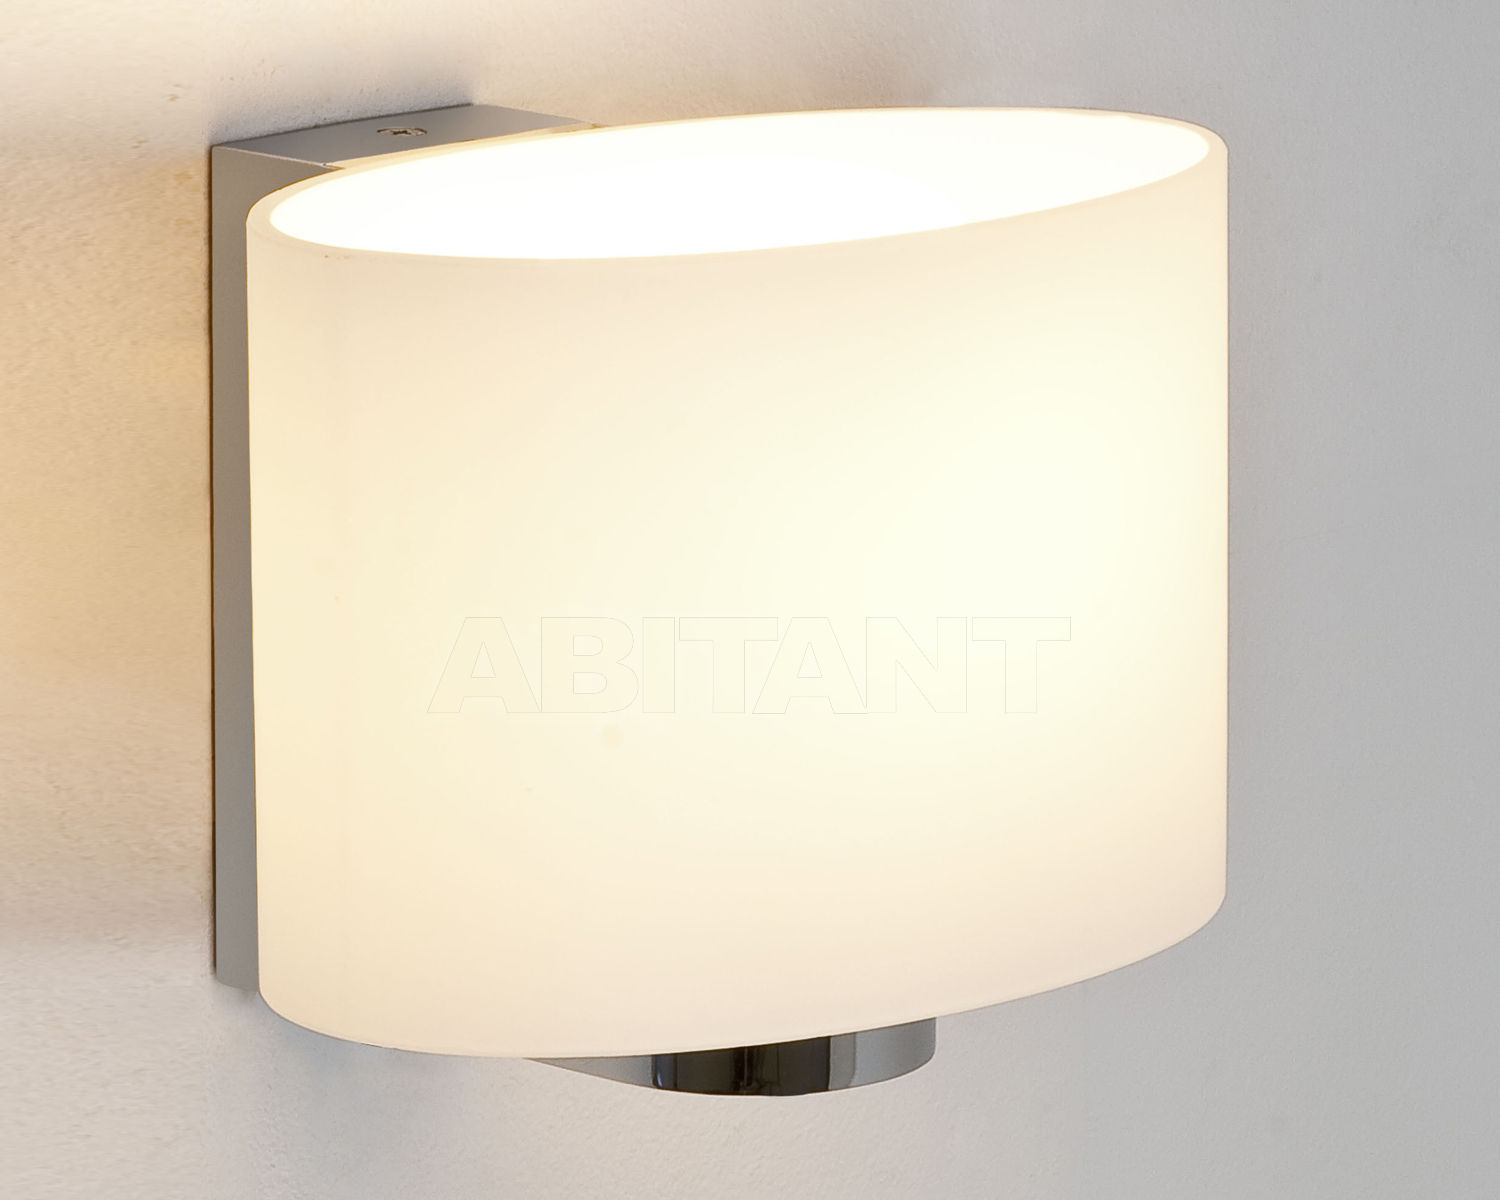 Купить Бра Siena Oval Astro Lighting Bathroom 1149002